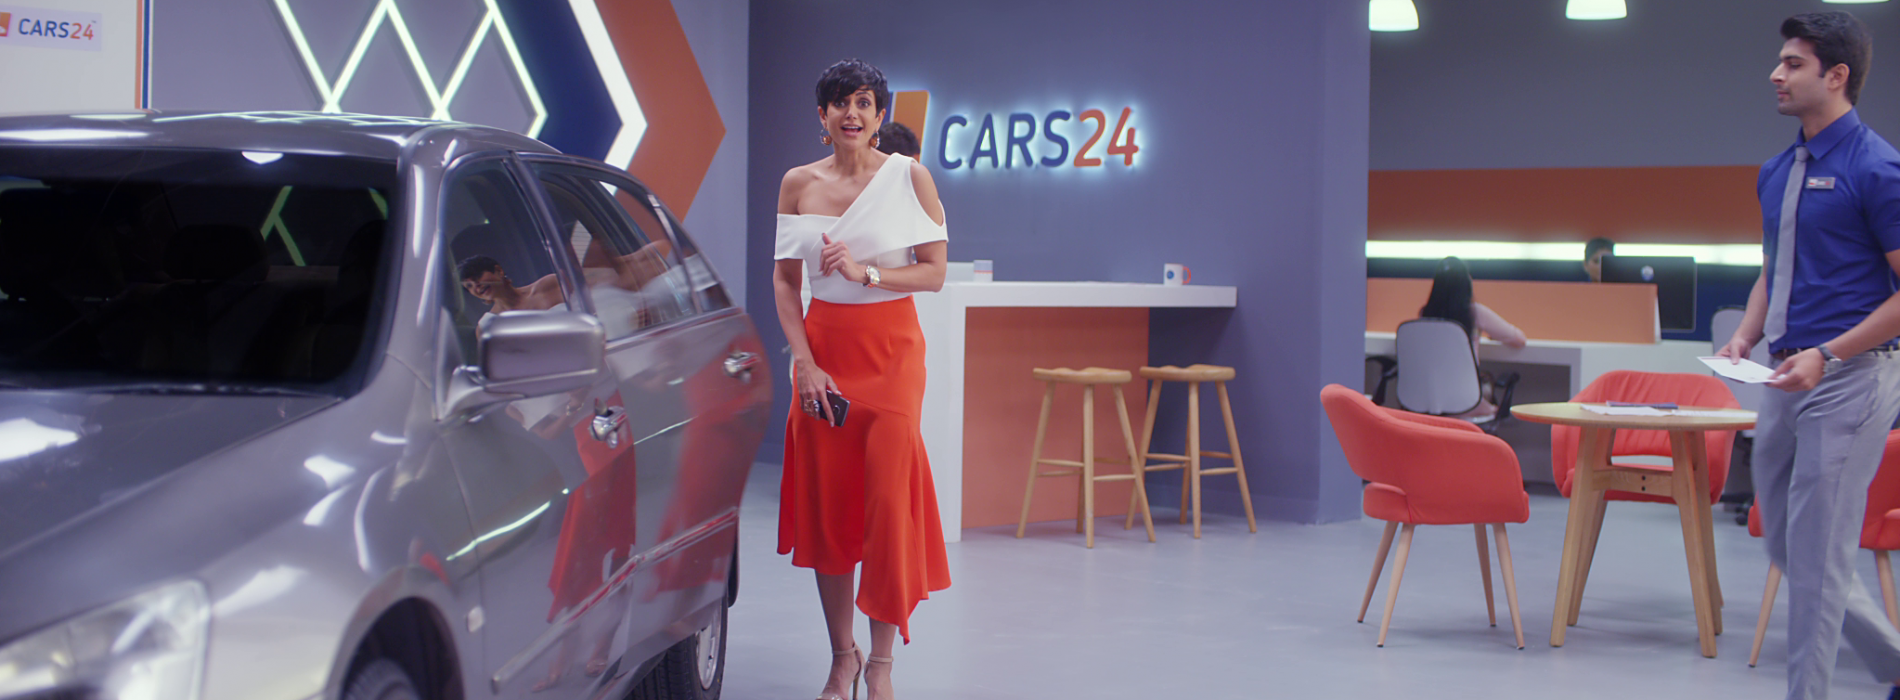 Cars24 announces fully integrated brand re-launch and re-positioning